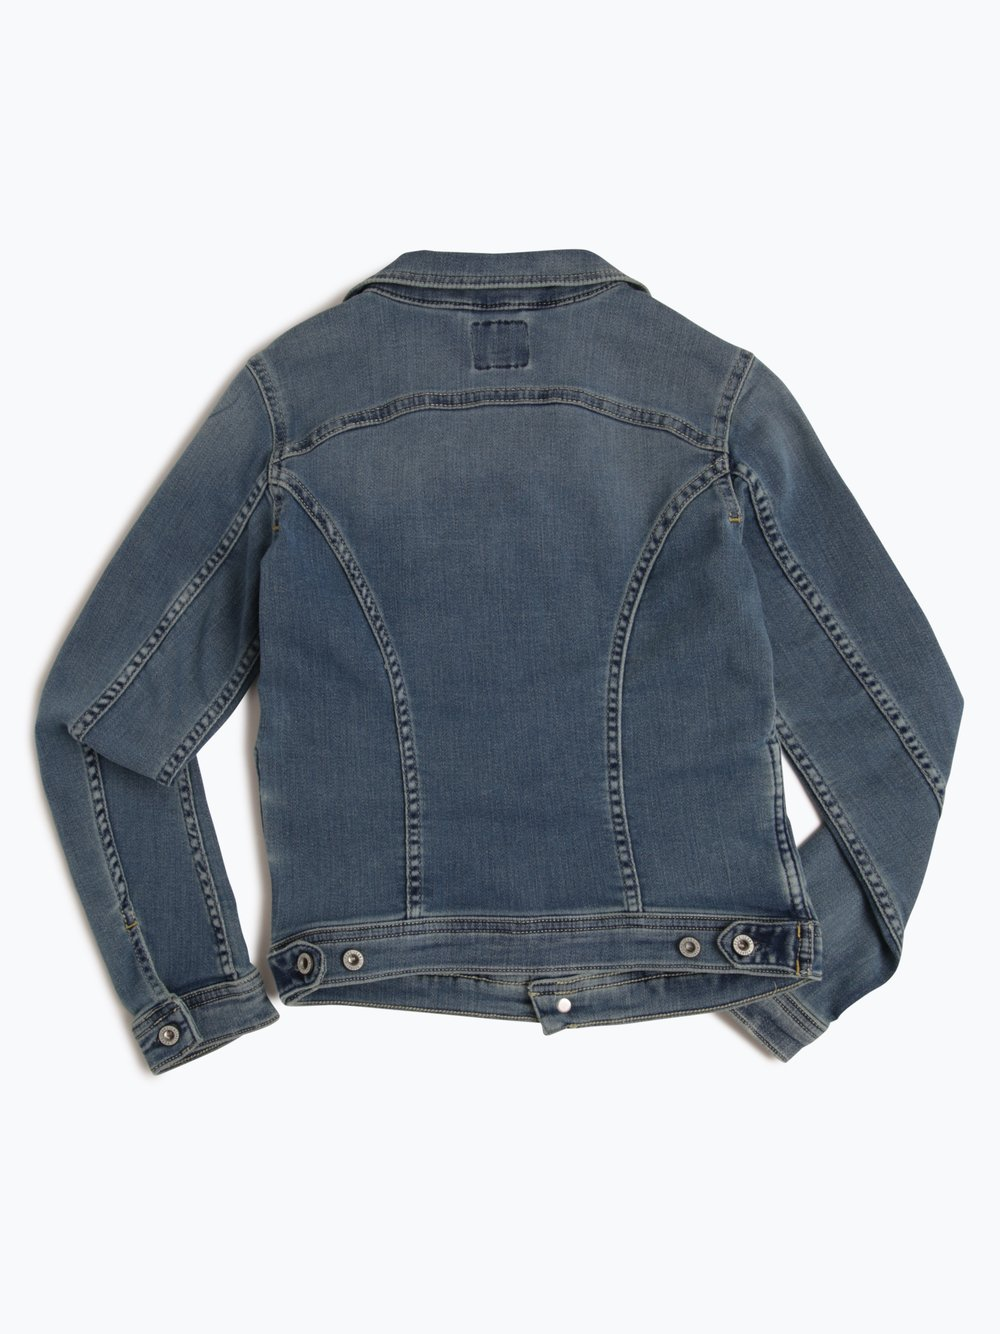 pepe jeans london stoff jacken